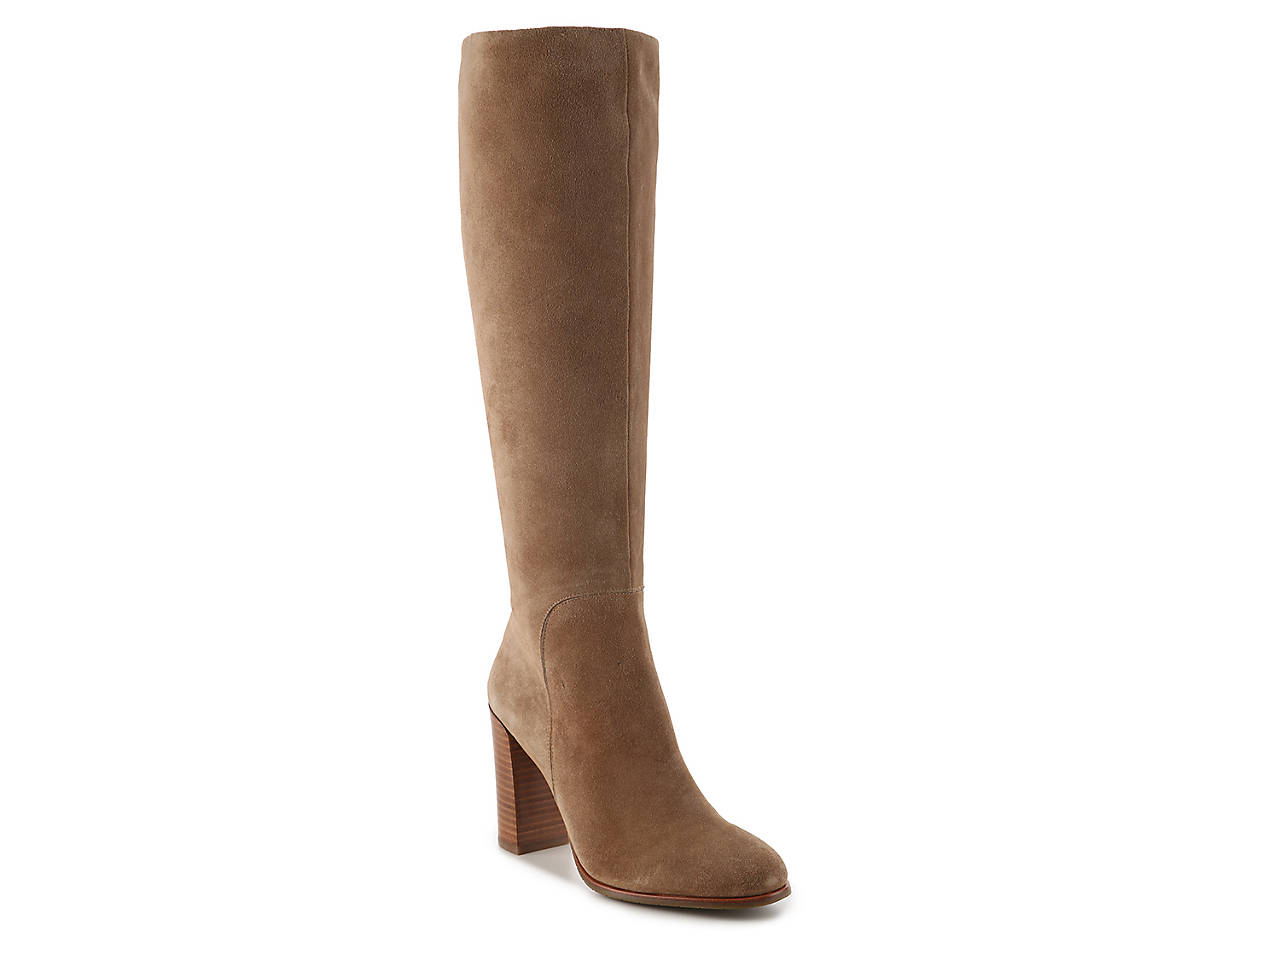 604a8784da1 Kenneth Cole New York Justin Boot Women s Shoes